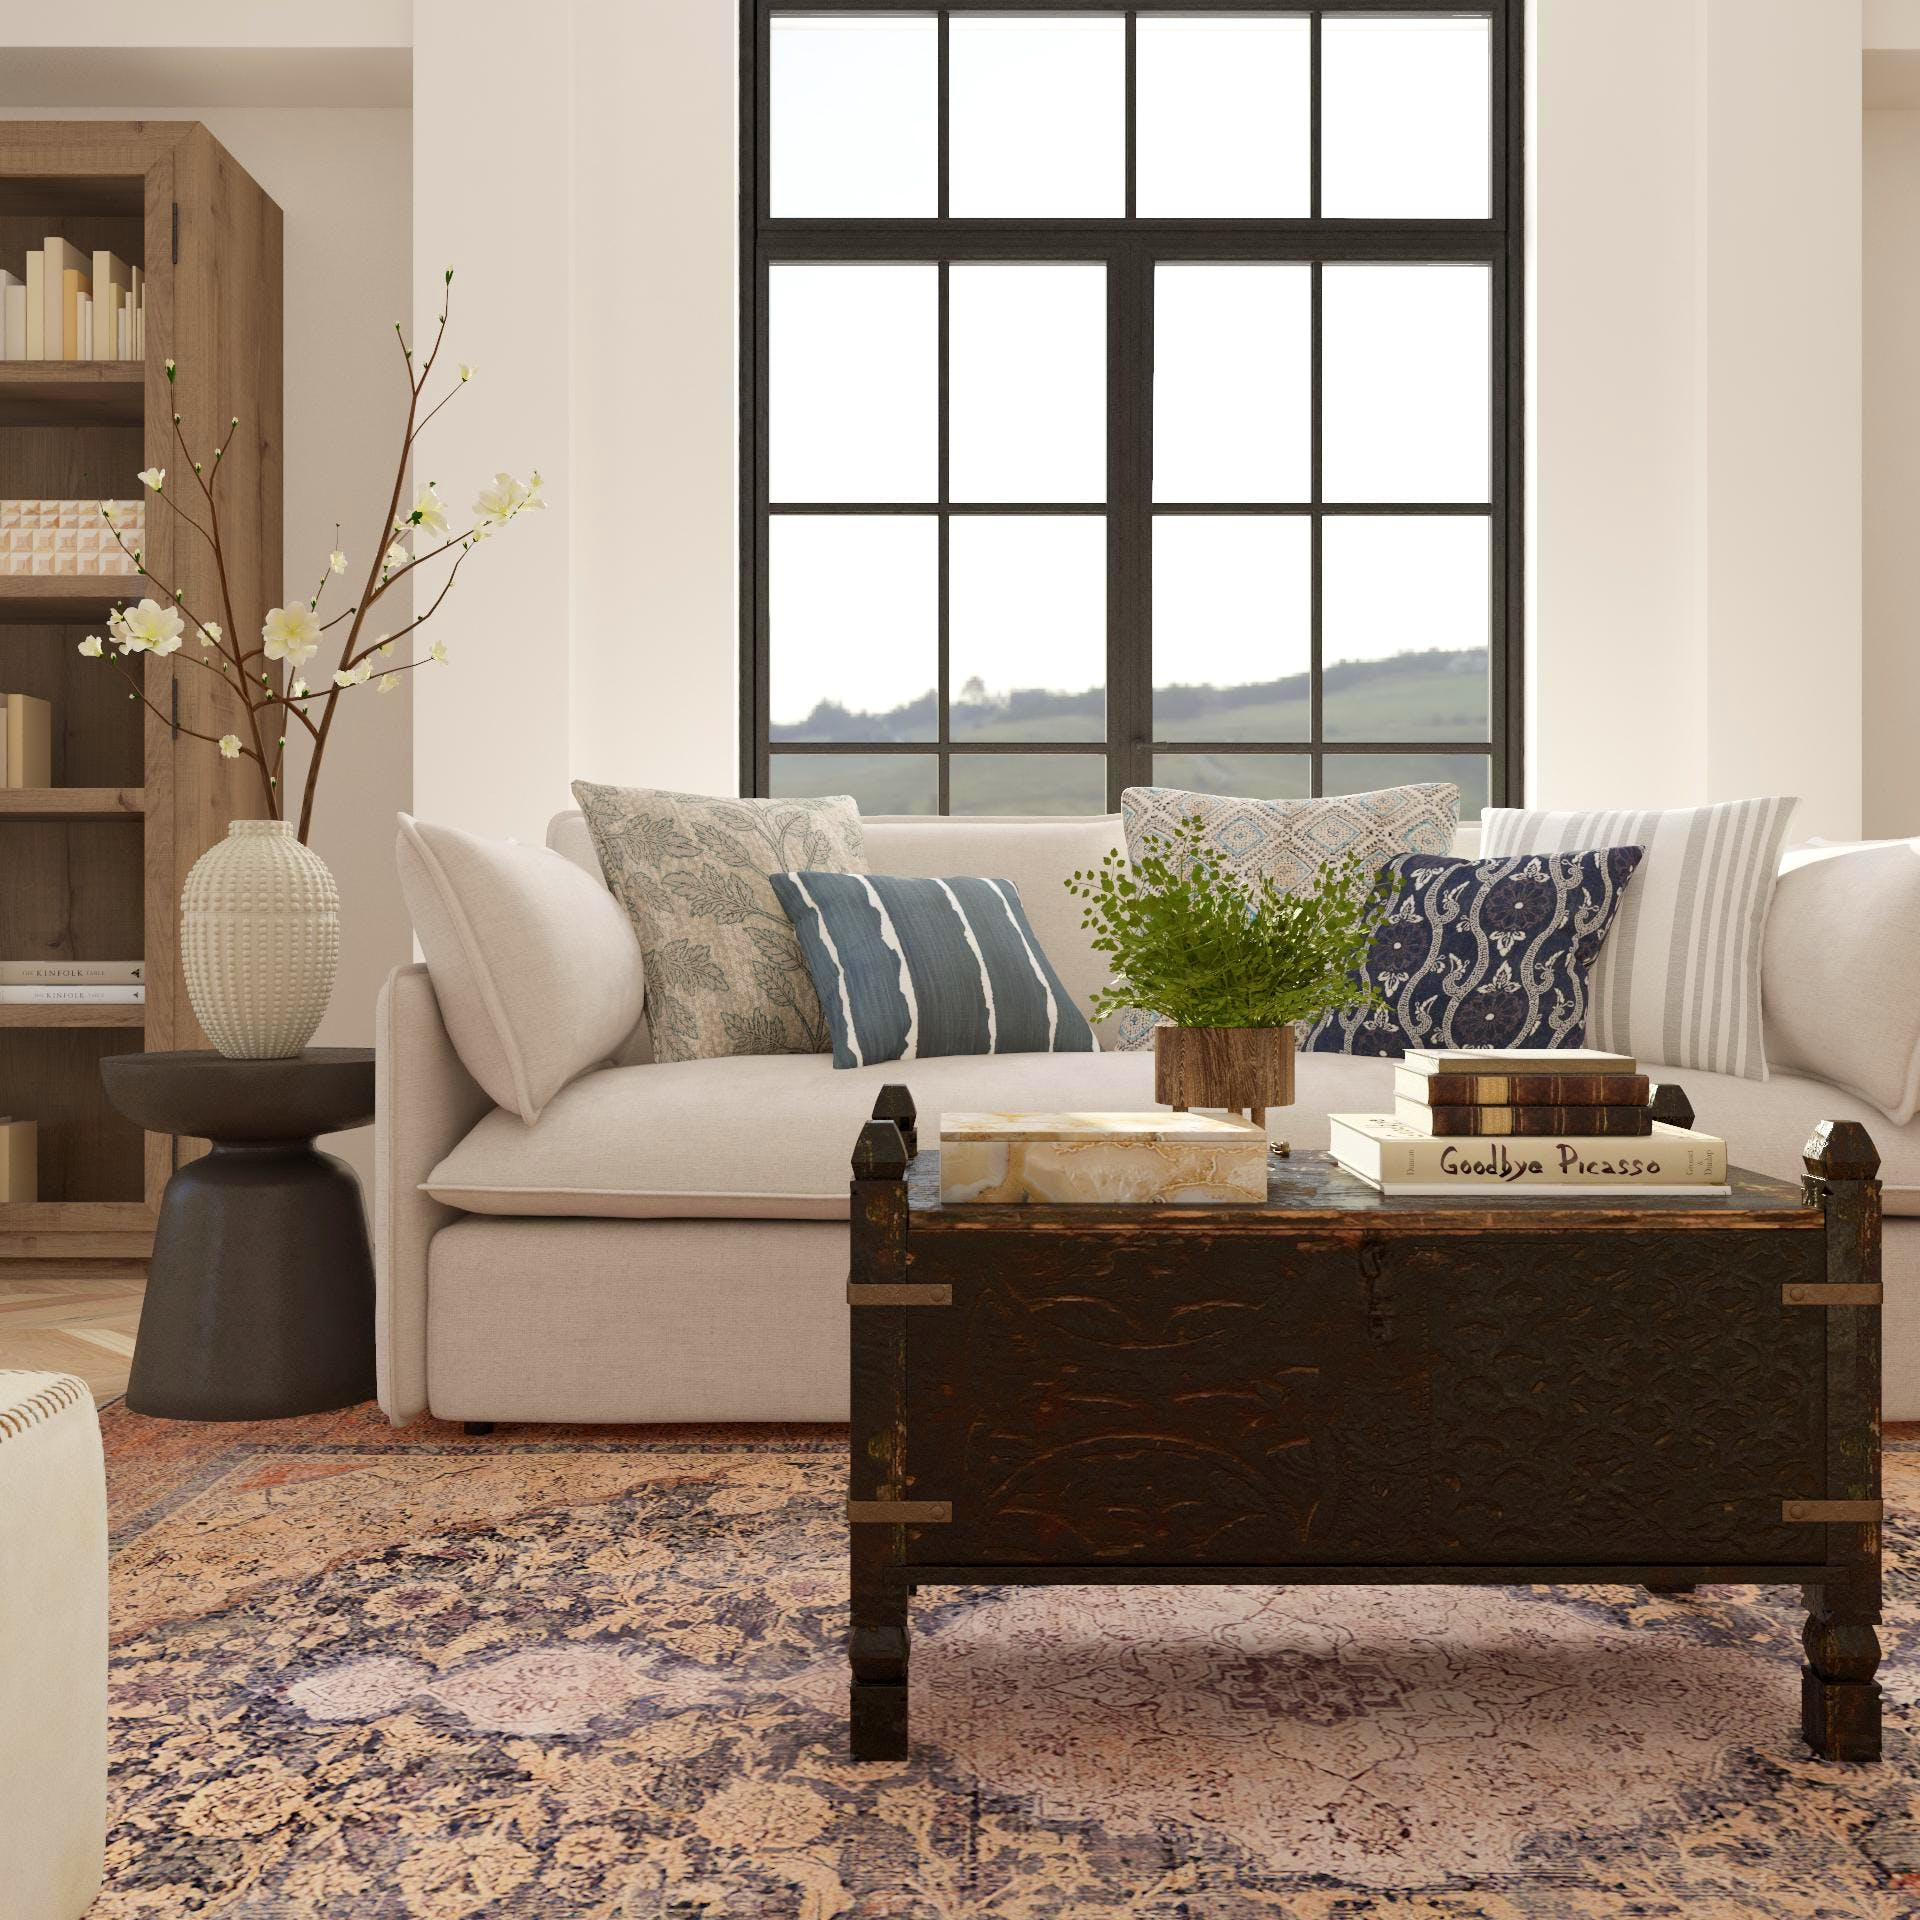 Modern Rustic Living Room With Antique Coffee Table Trunk